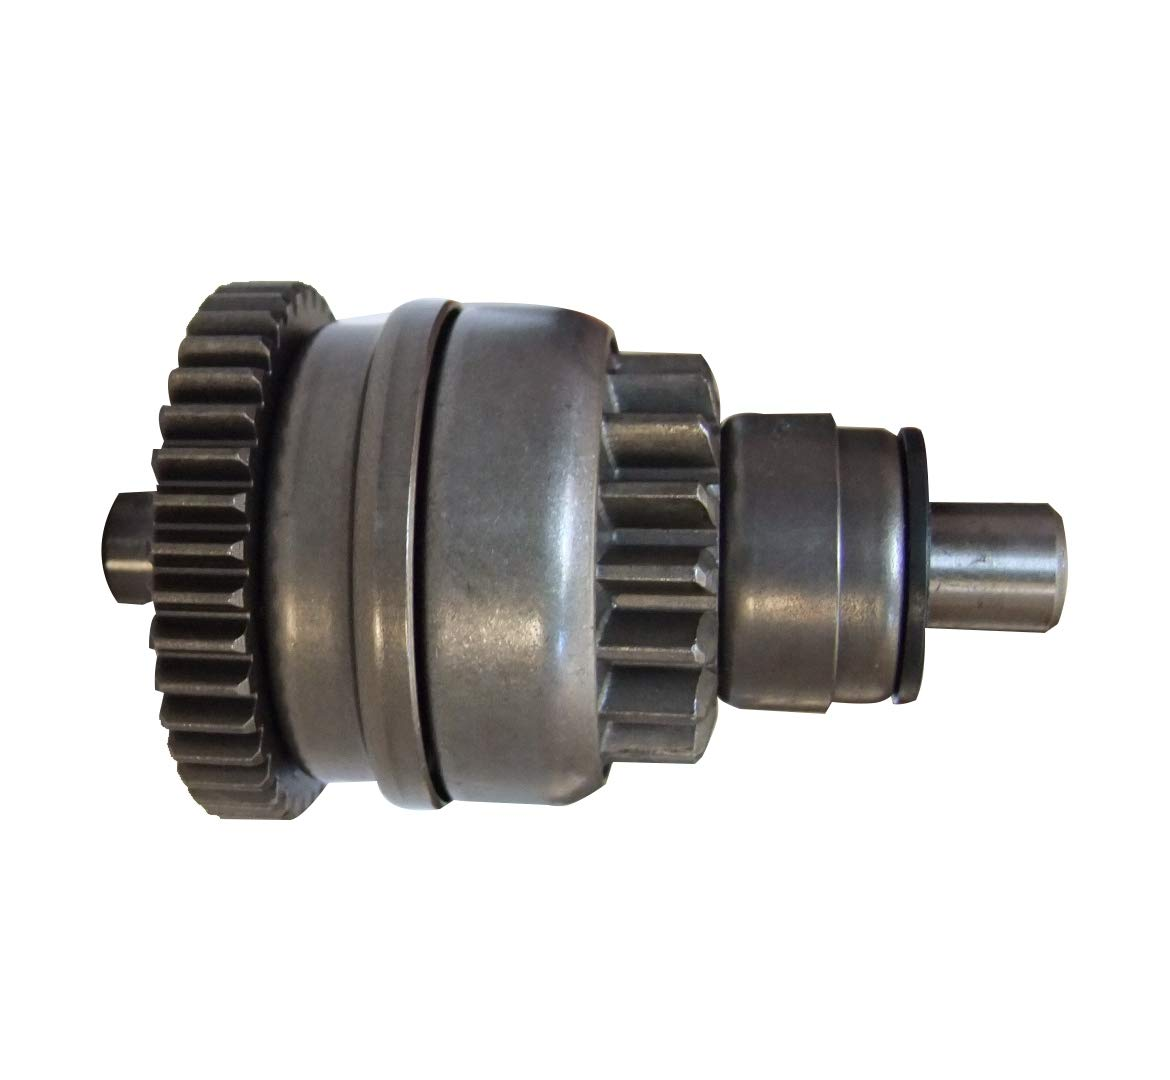 CHINA STARTER PARTS-Armatures Drive Gear Brush Holder